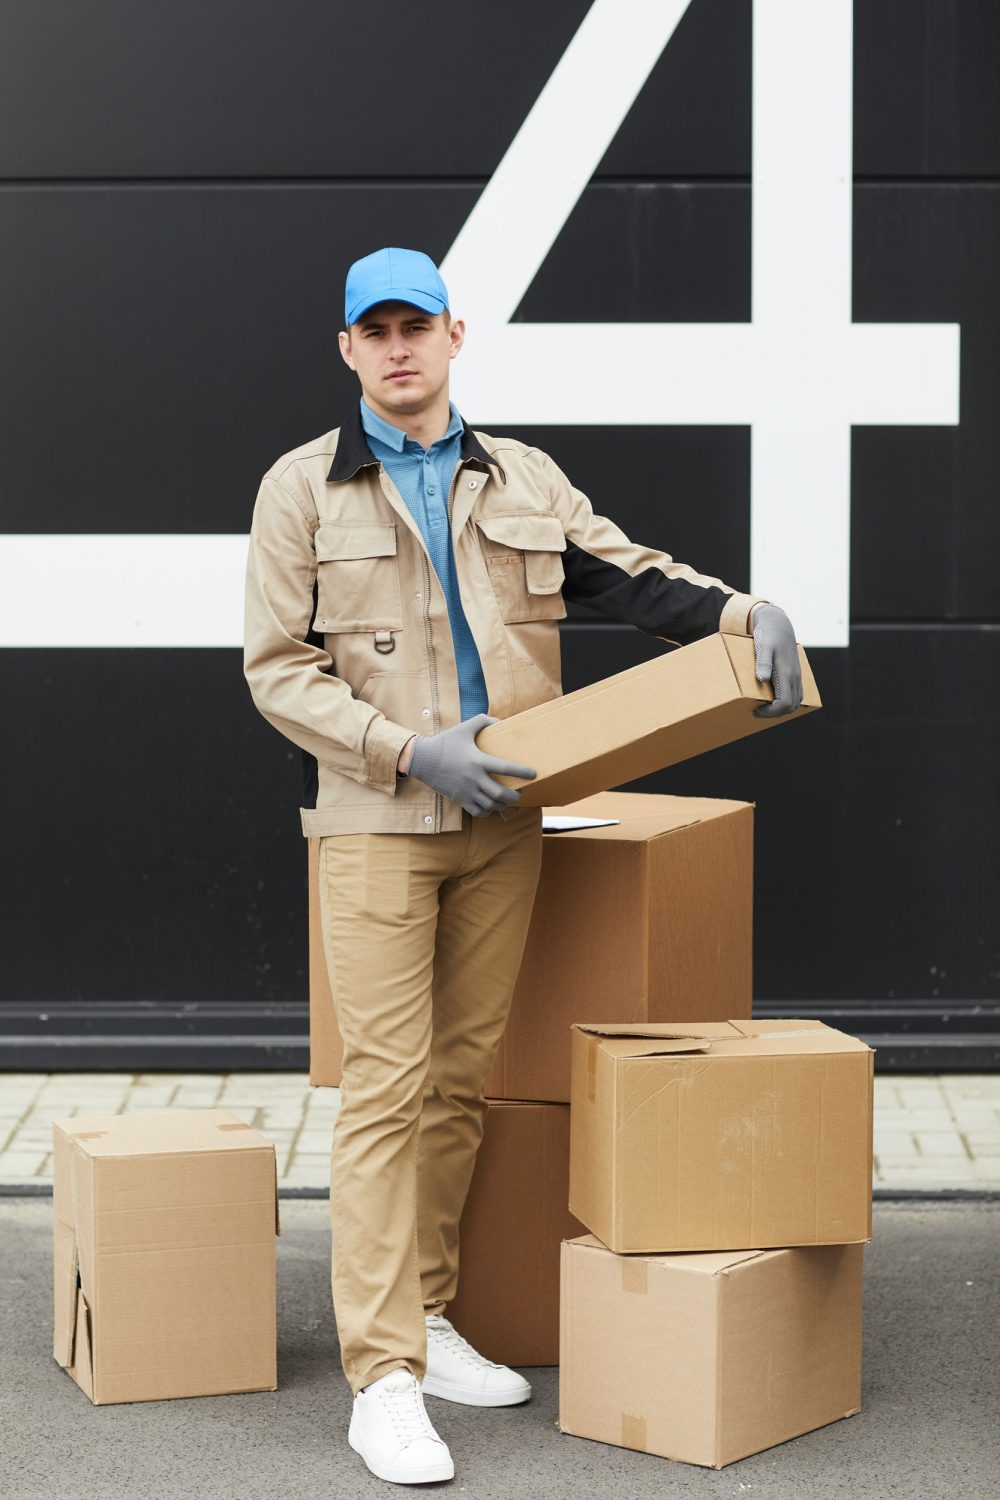 Courier working with parcels in warehouse